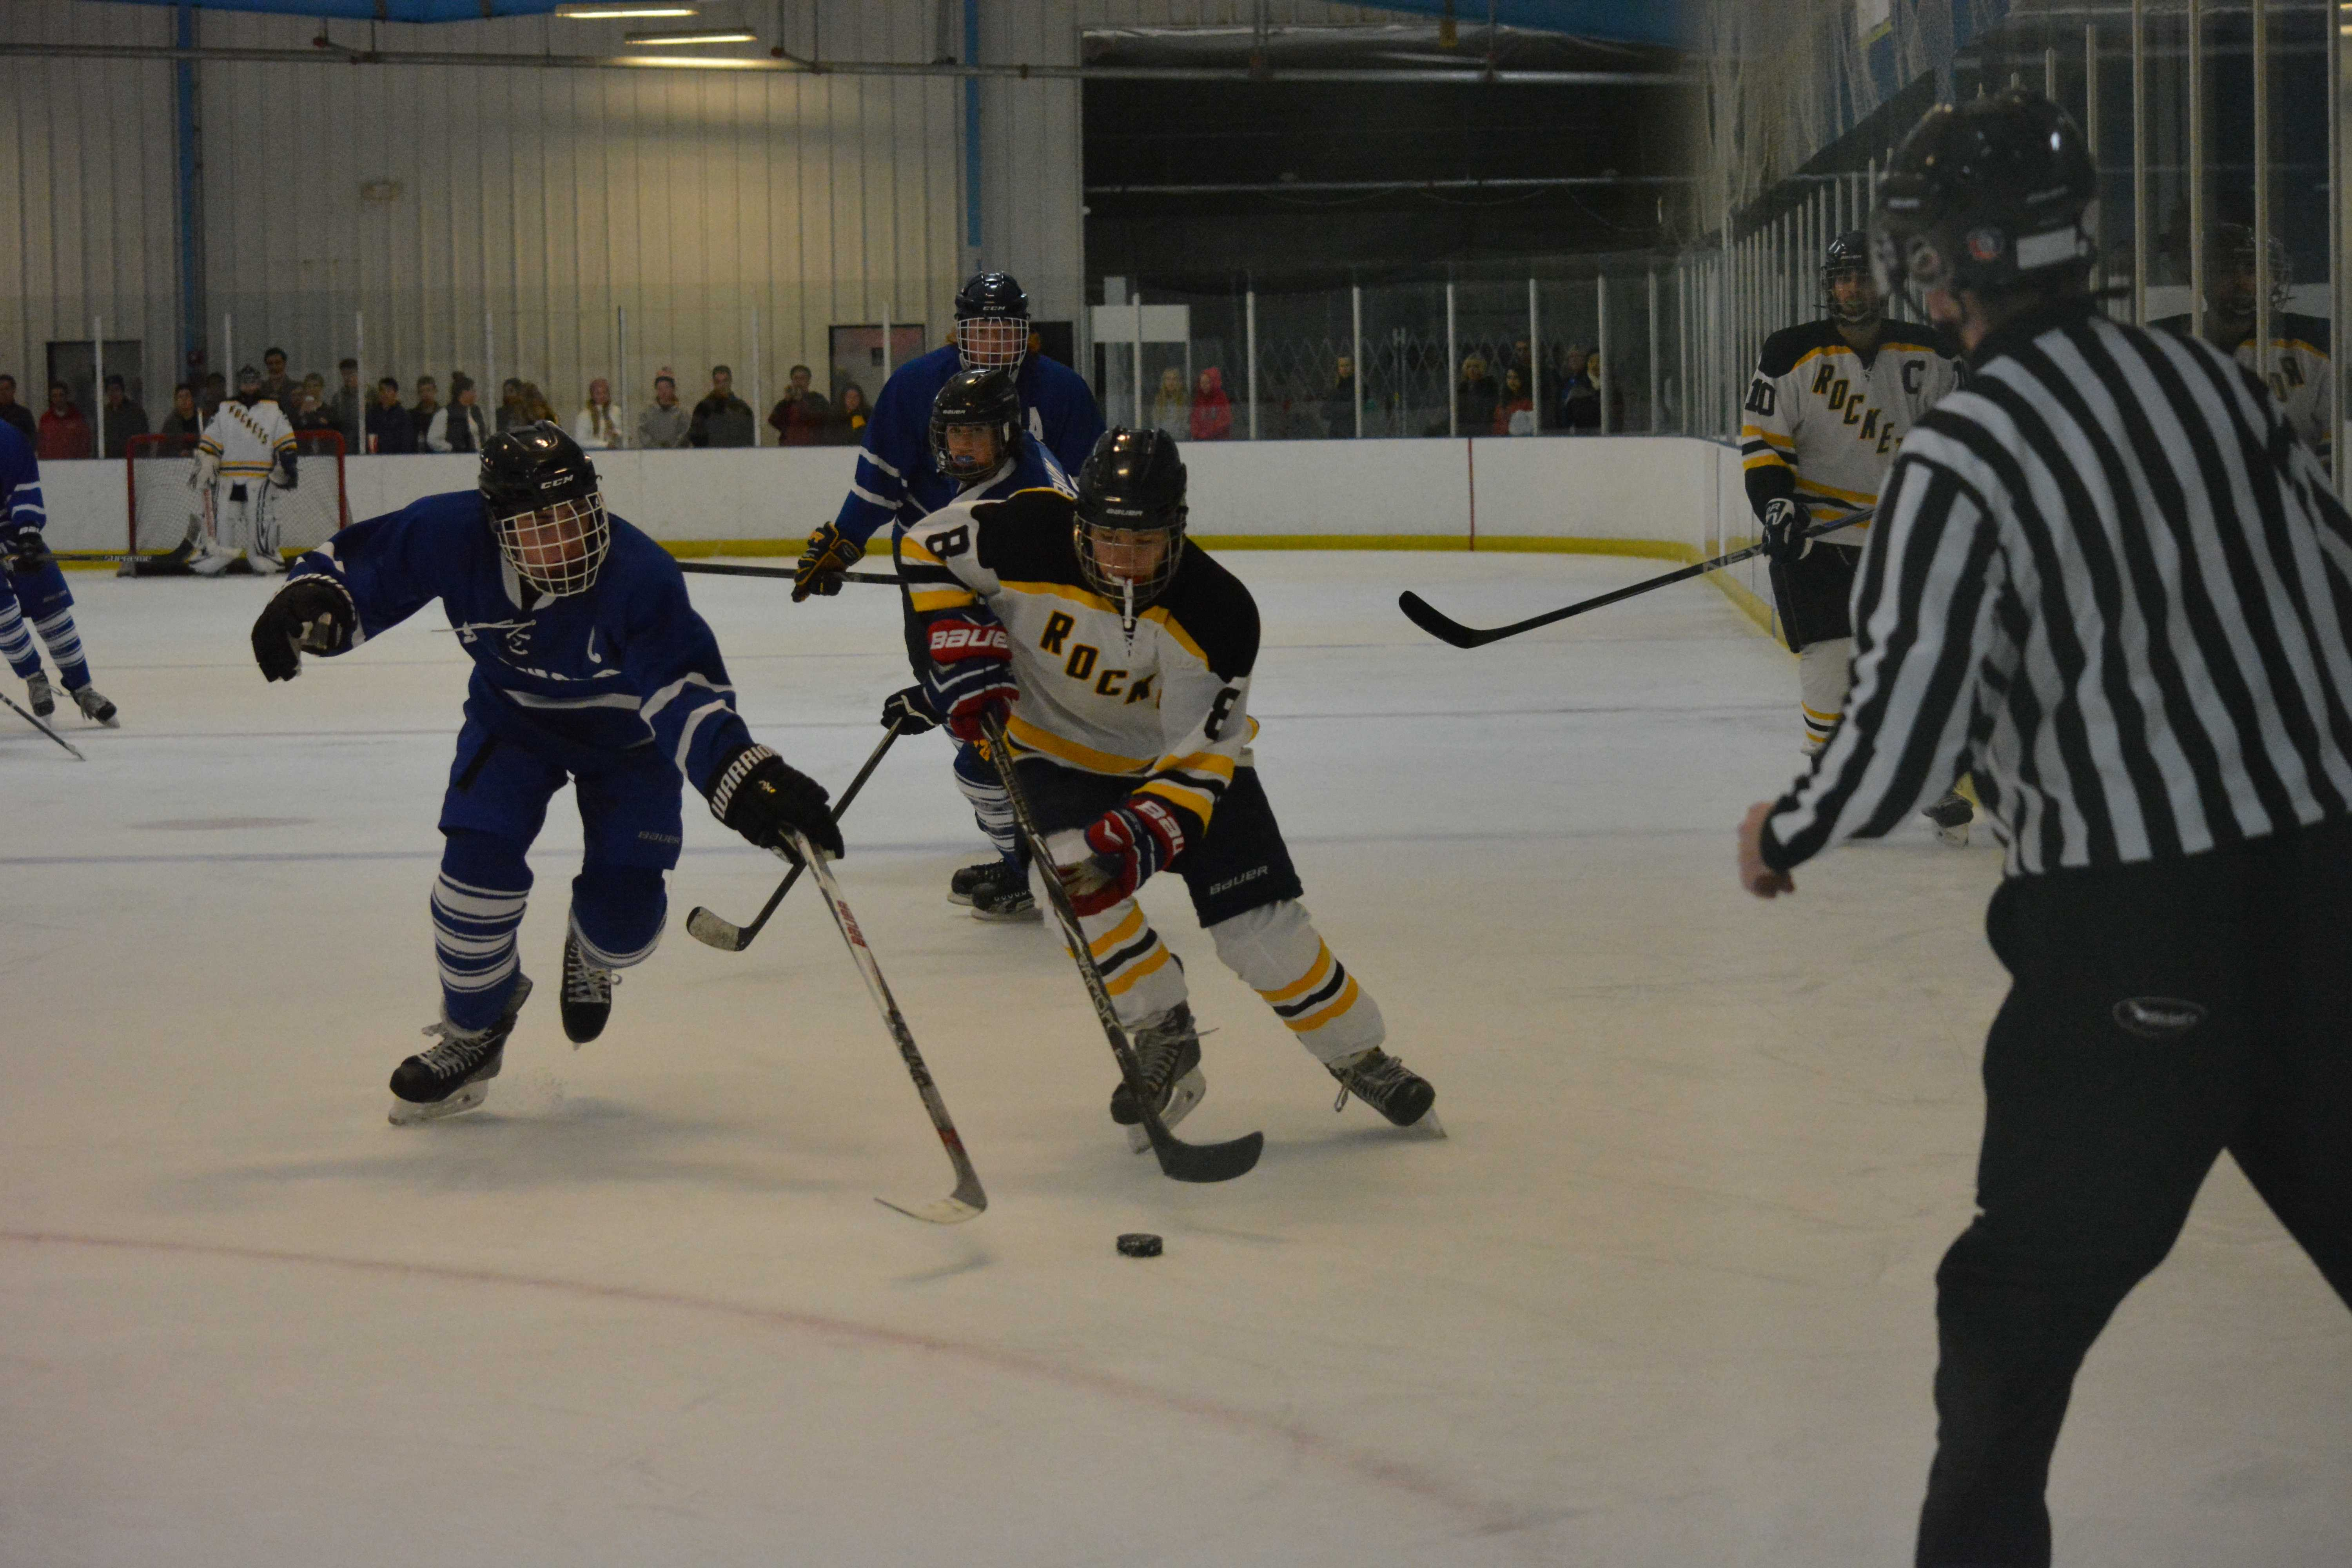 Rockets ice hockey falls to Sherwood leading to rough start in season